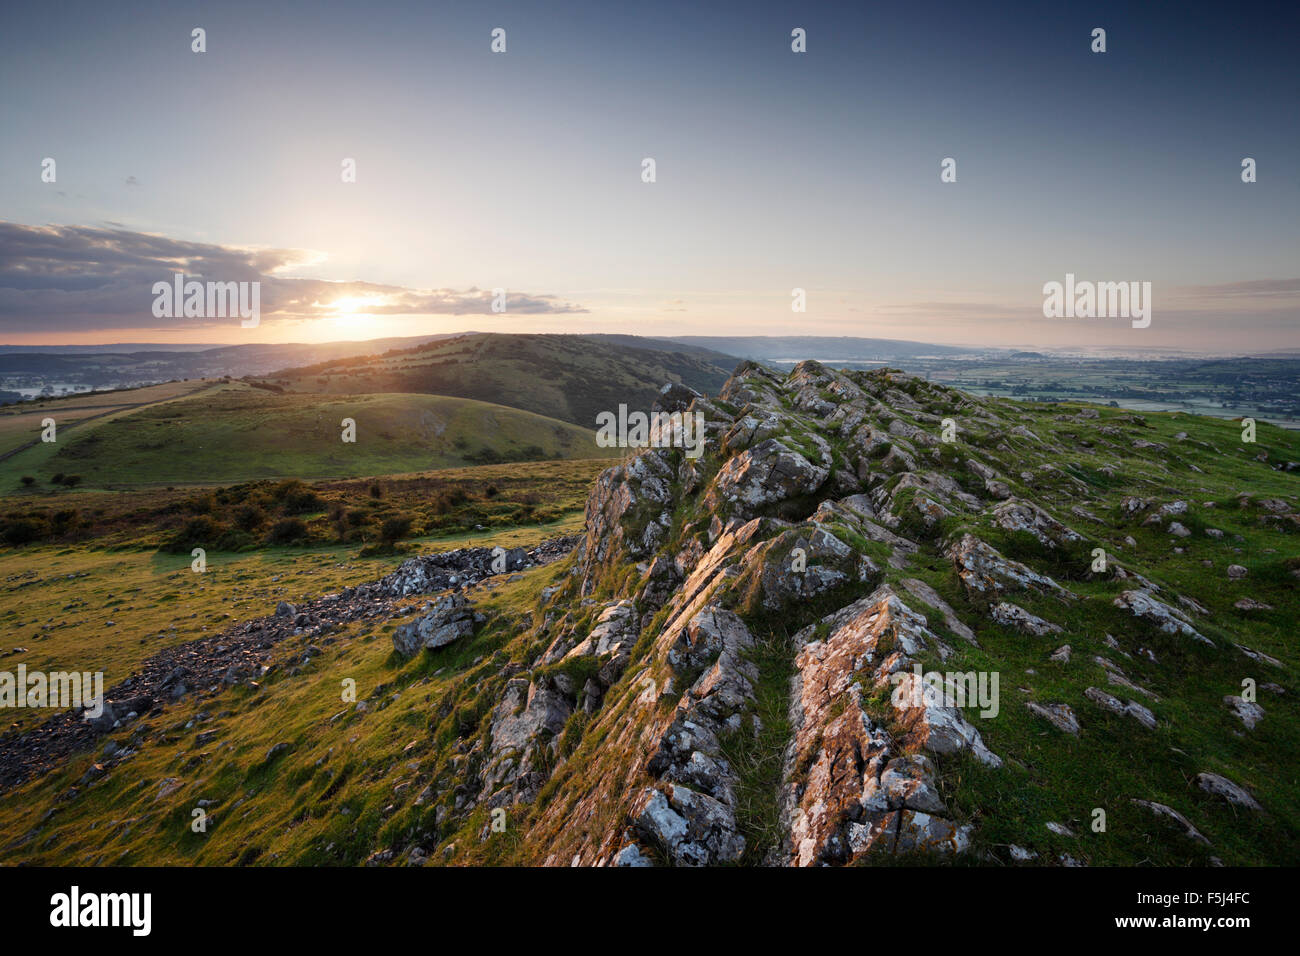 Sunrise over The Mendip Hills, from Crook Peak. Somerset. UK. - Stock Image